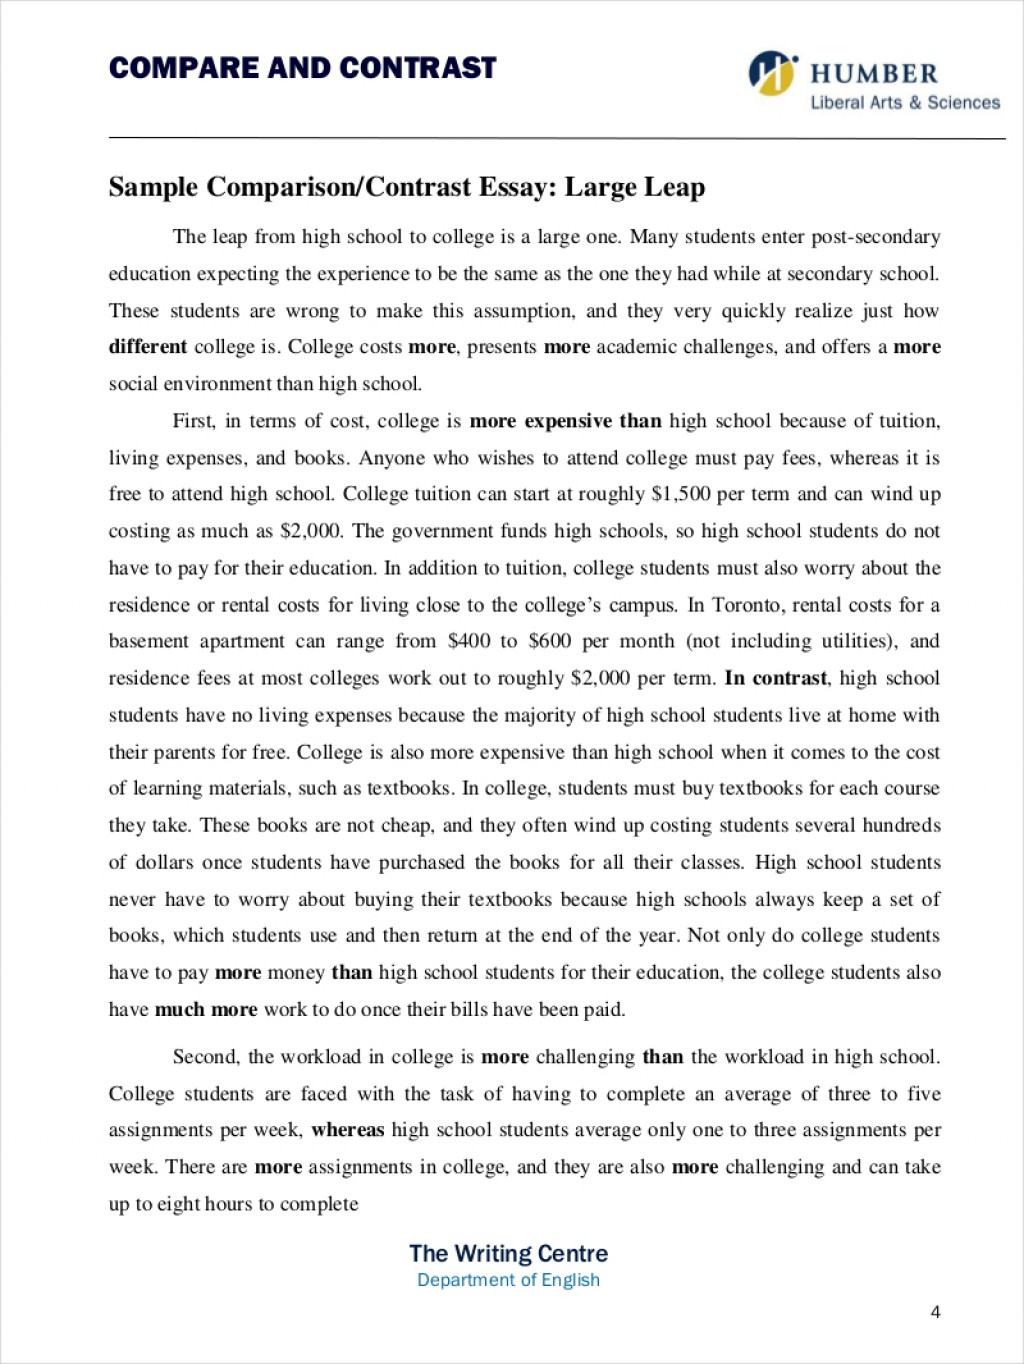 006 Compare And Contrast Essay Examples Comparative Samples Free Pdf Format Download Throughout Comparison Thesis Coles Thecolossus Co Within Ex 5th Grade 4th 6th 3rd Magnificent Elementary 7th College Level Large